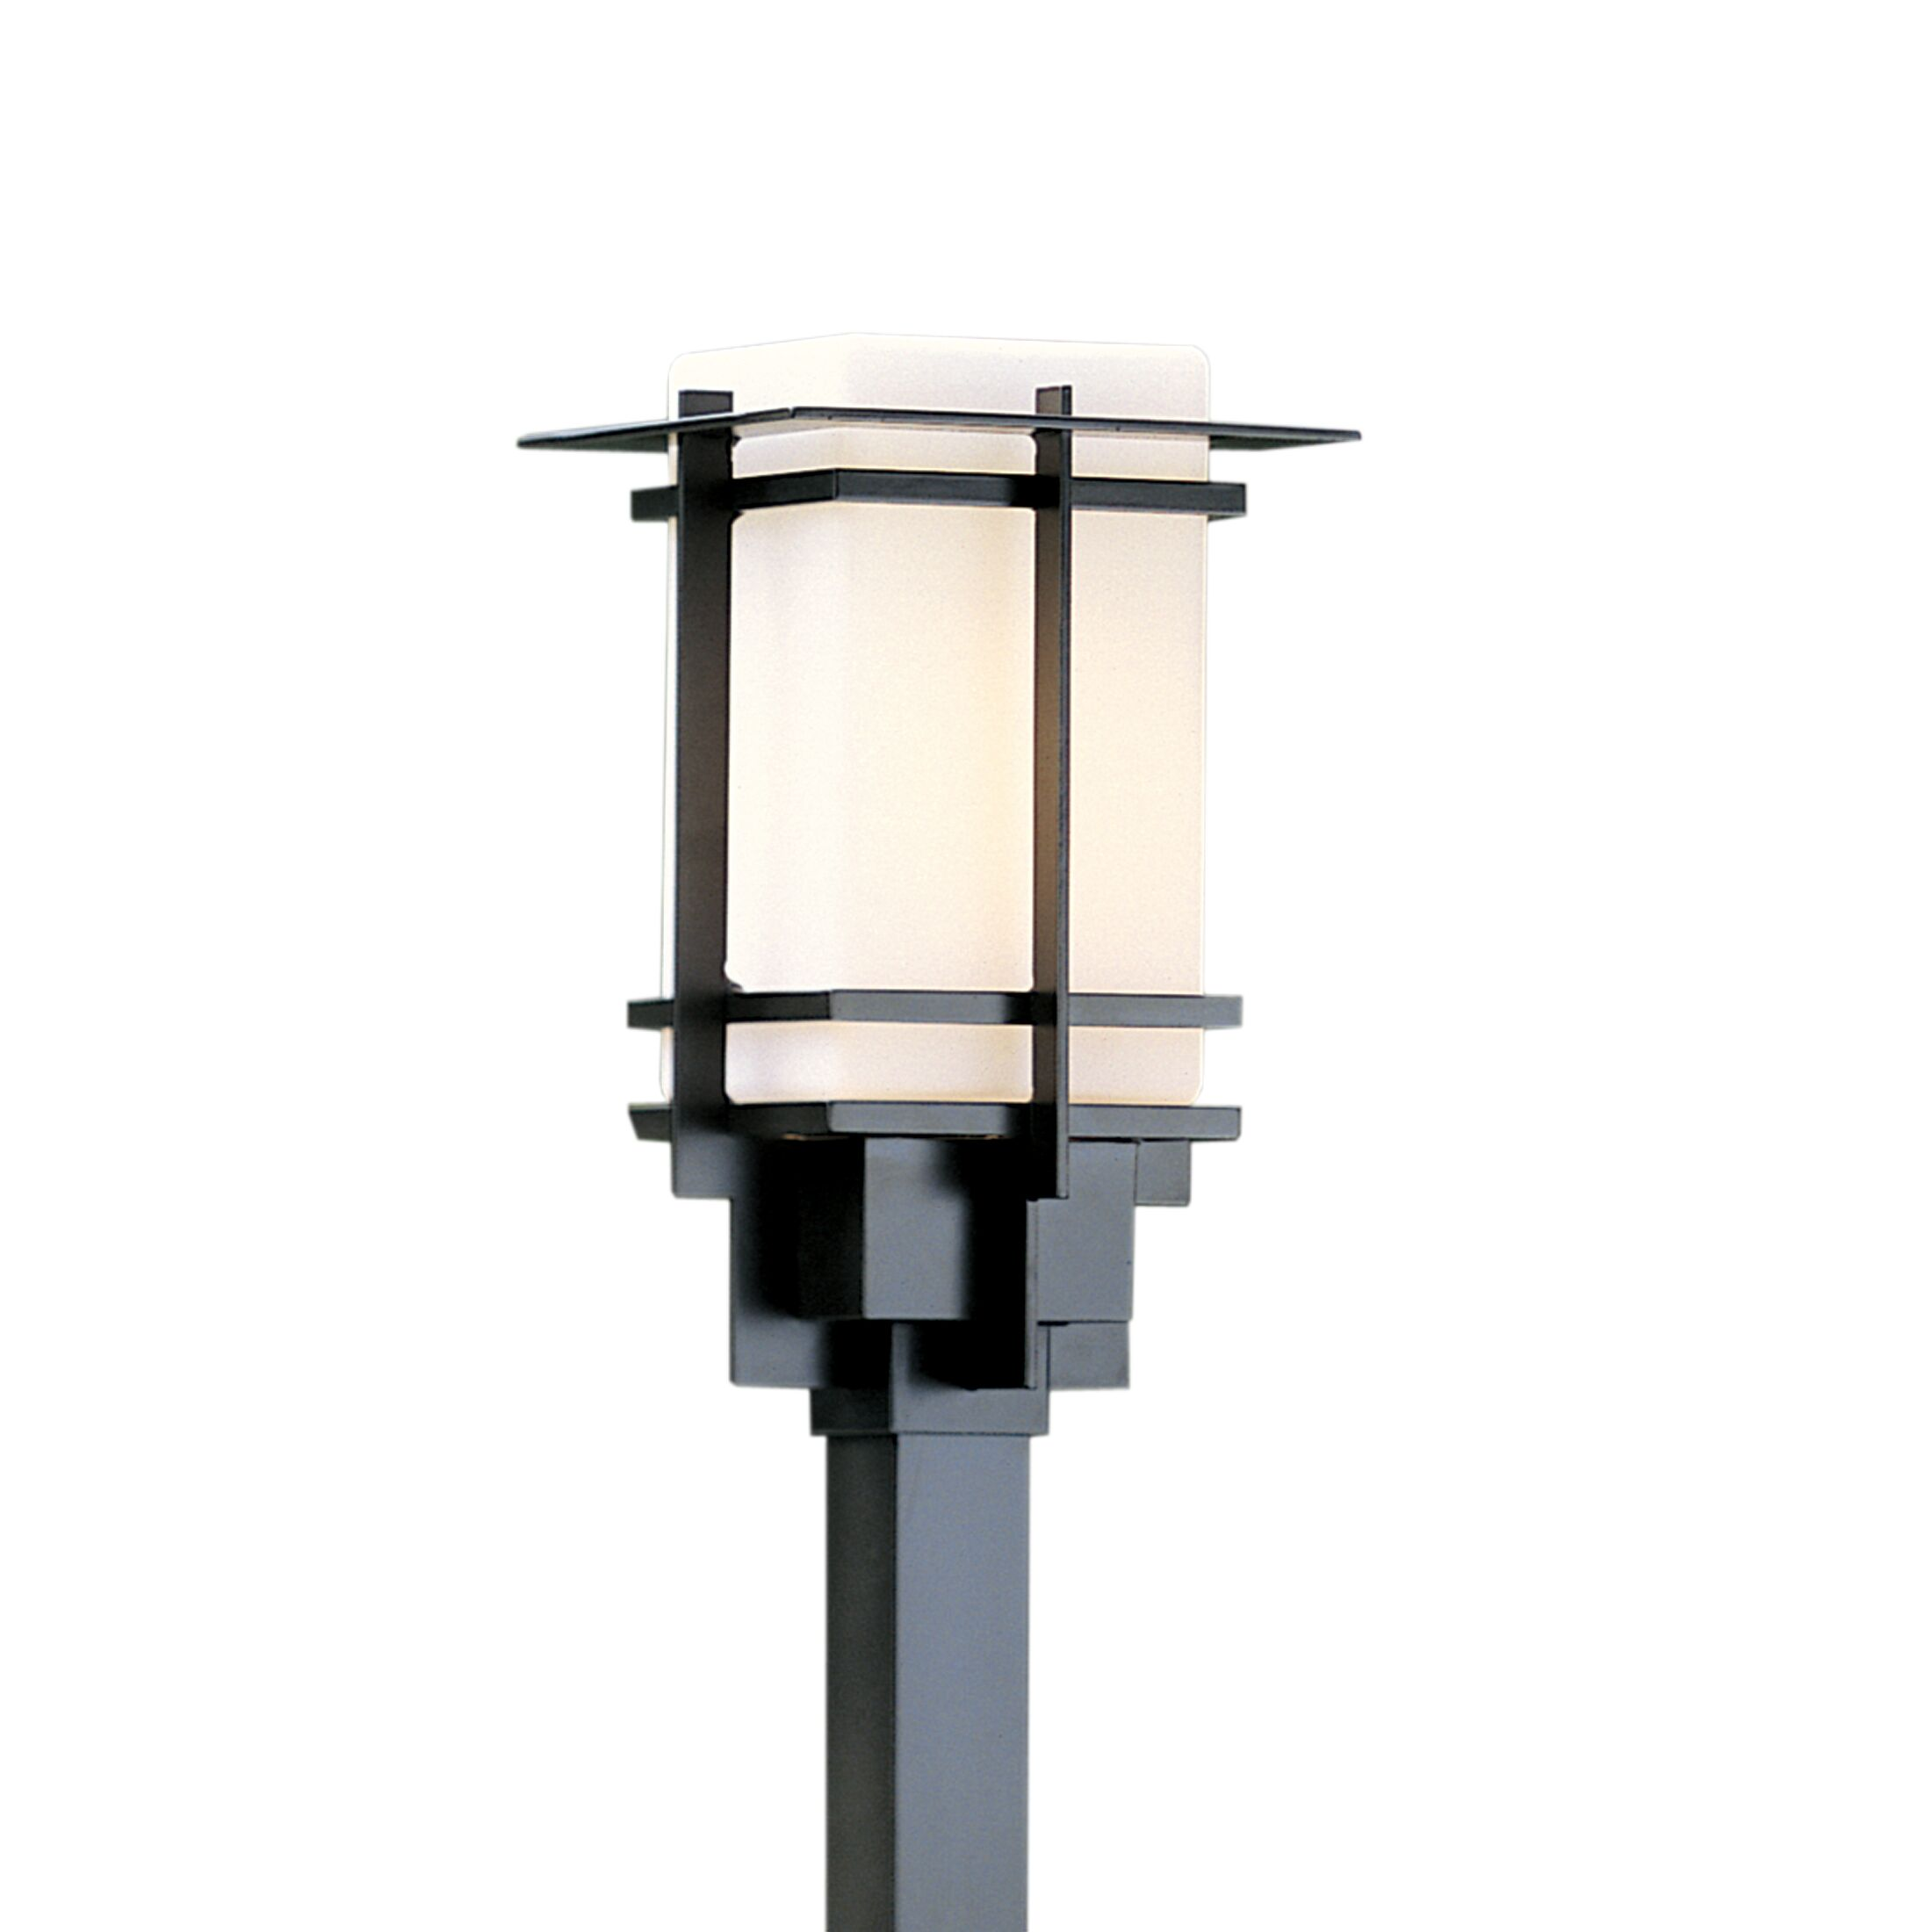 Product Detail: Tourou Outdoor Post Light